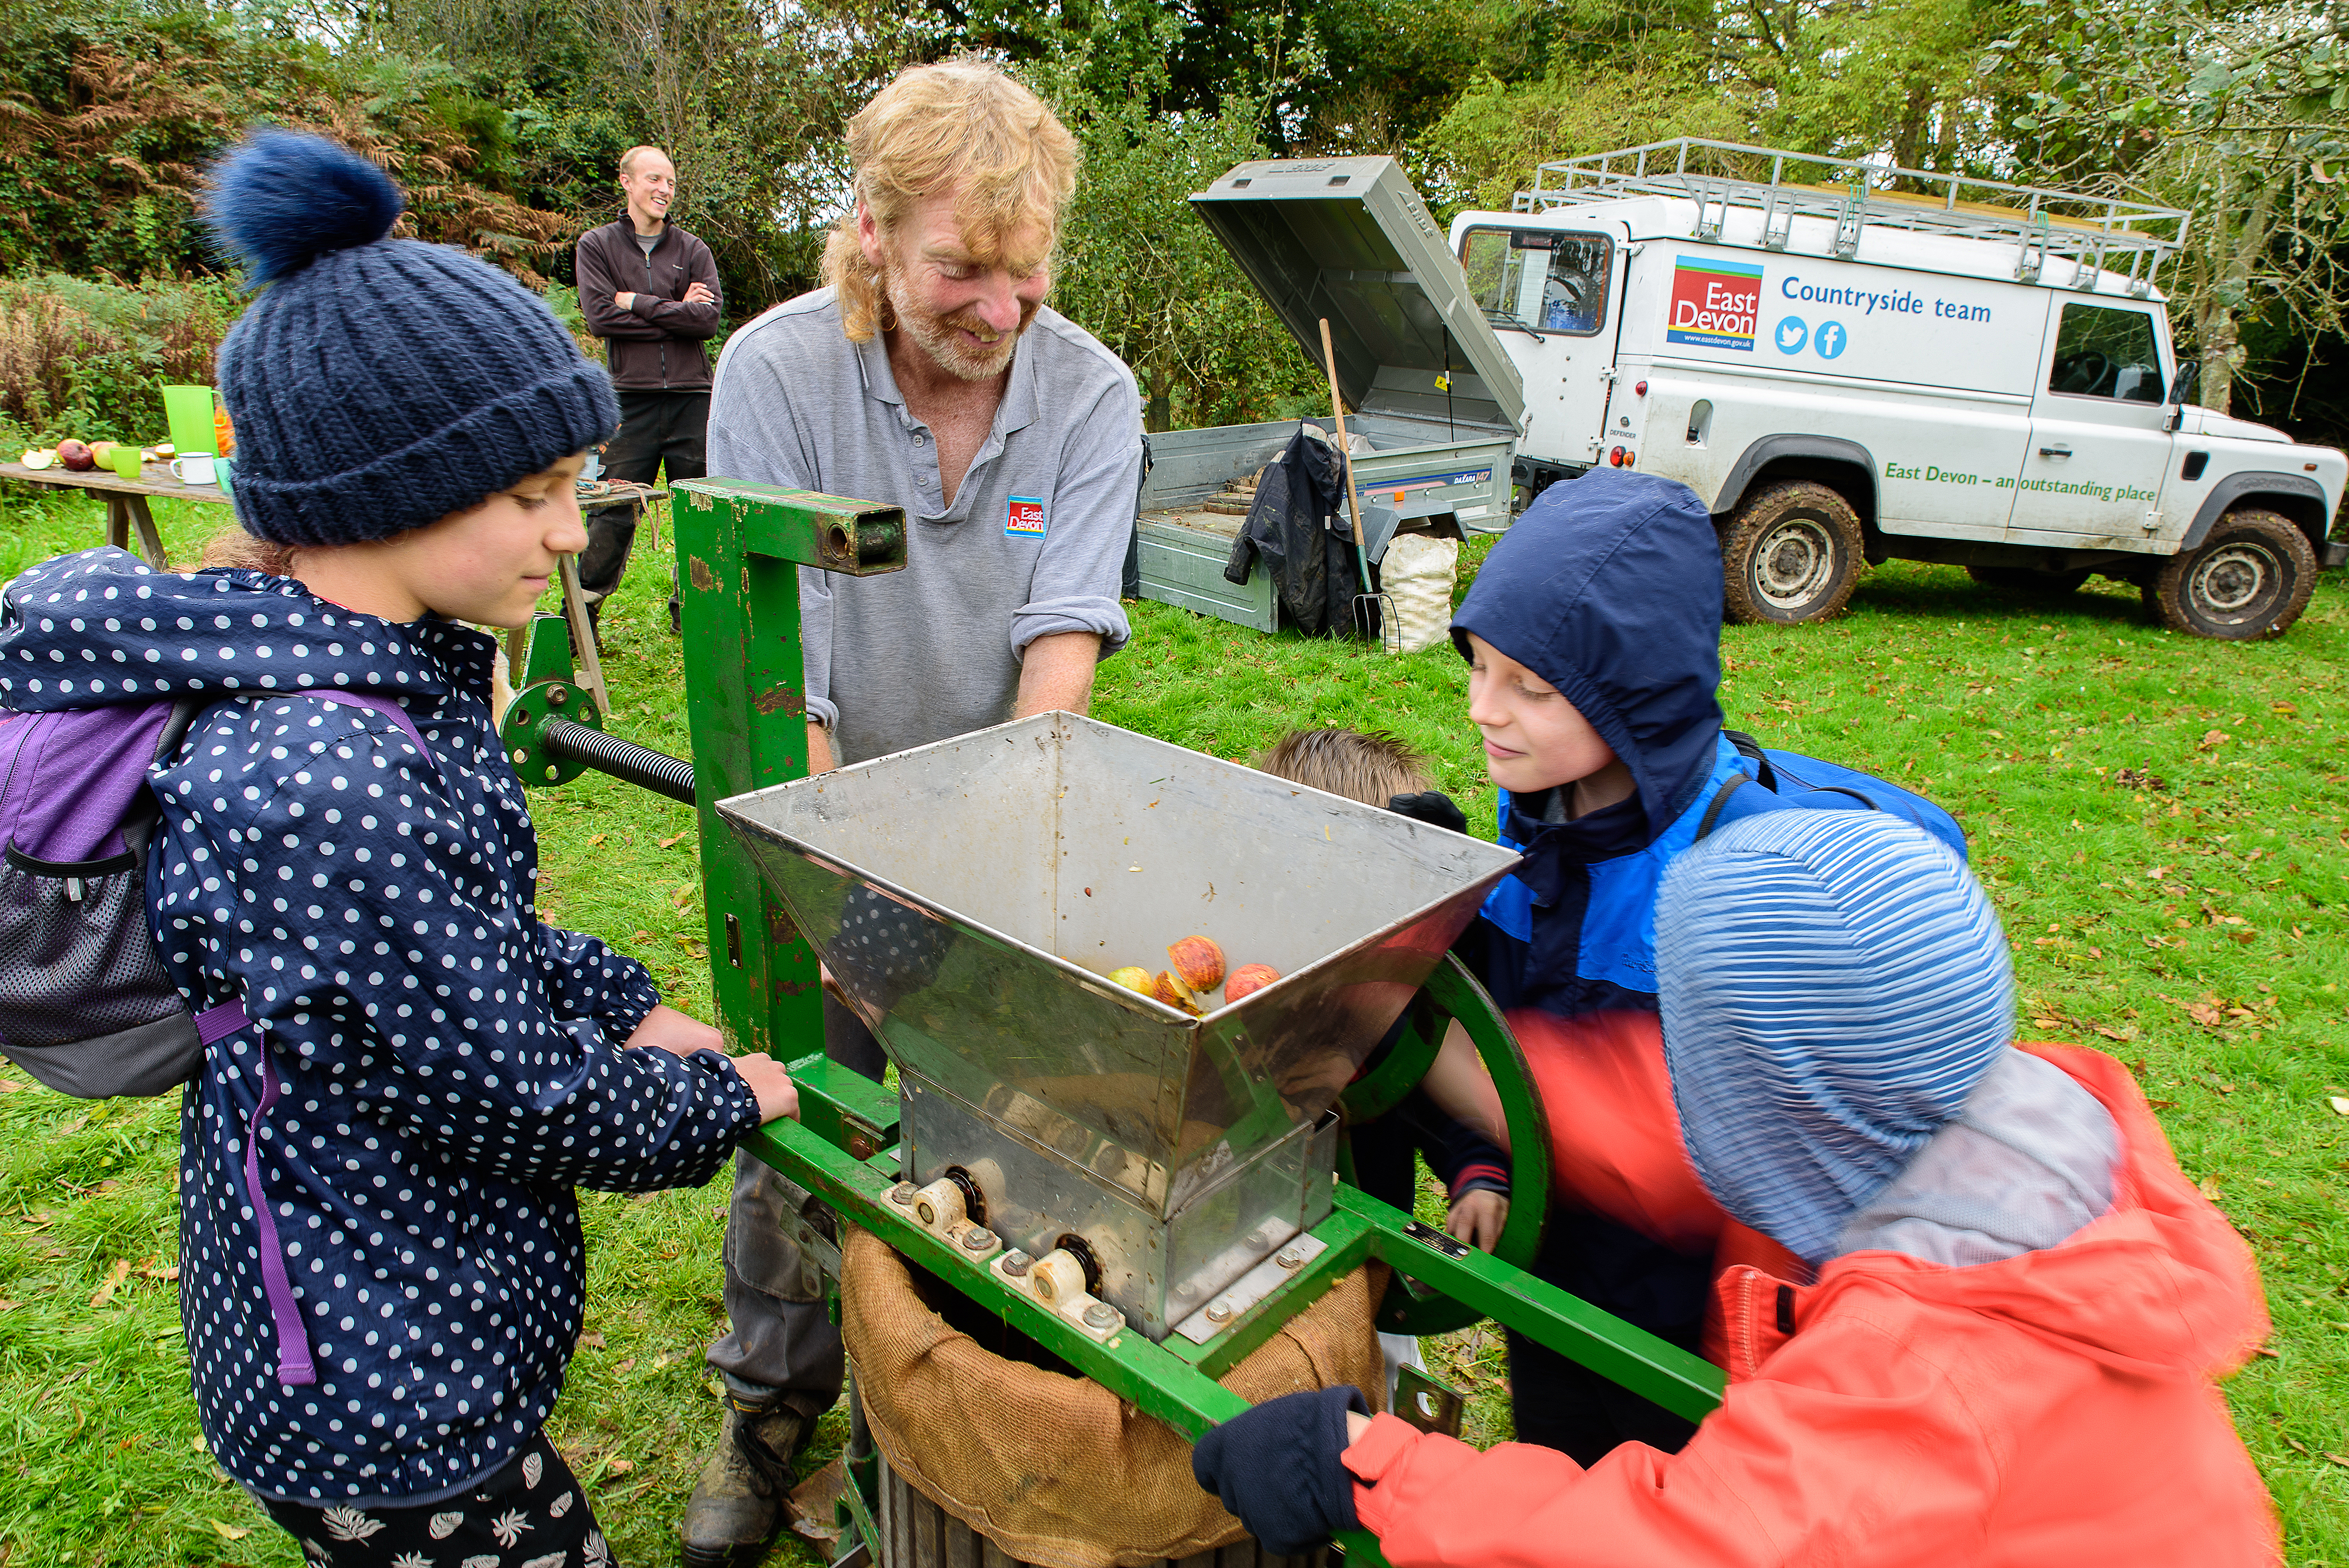 Apple pressing at Sidmouth (Wed 23 Oct) 10.30 am - 1.30 pm